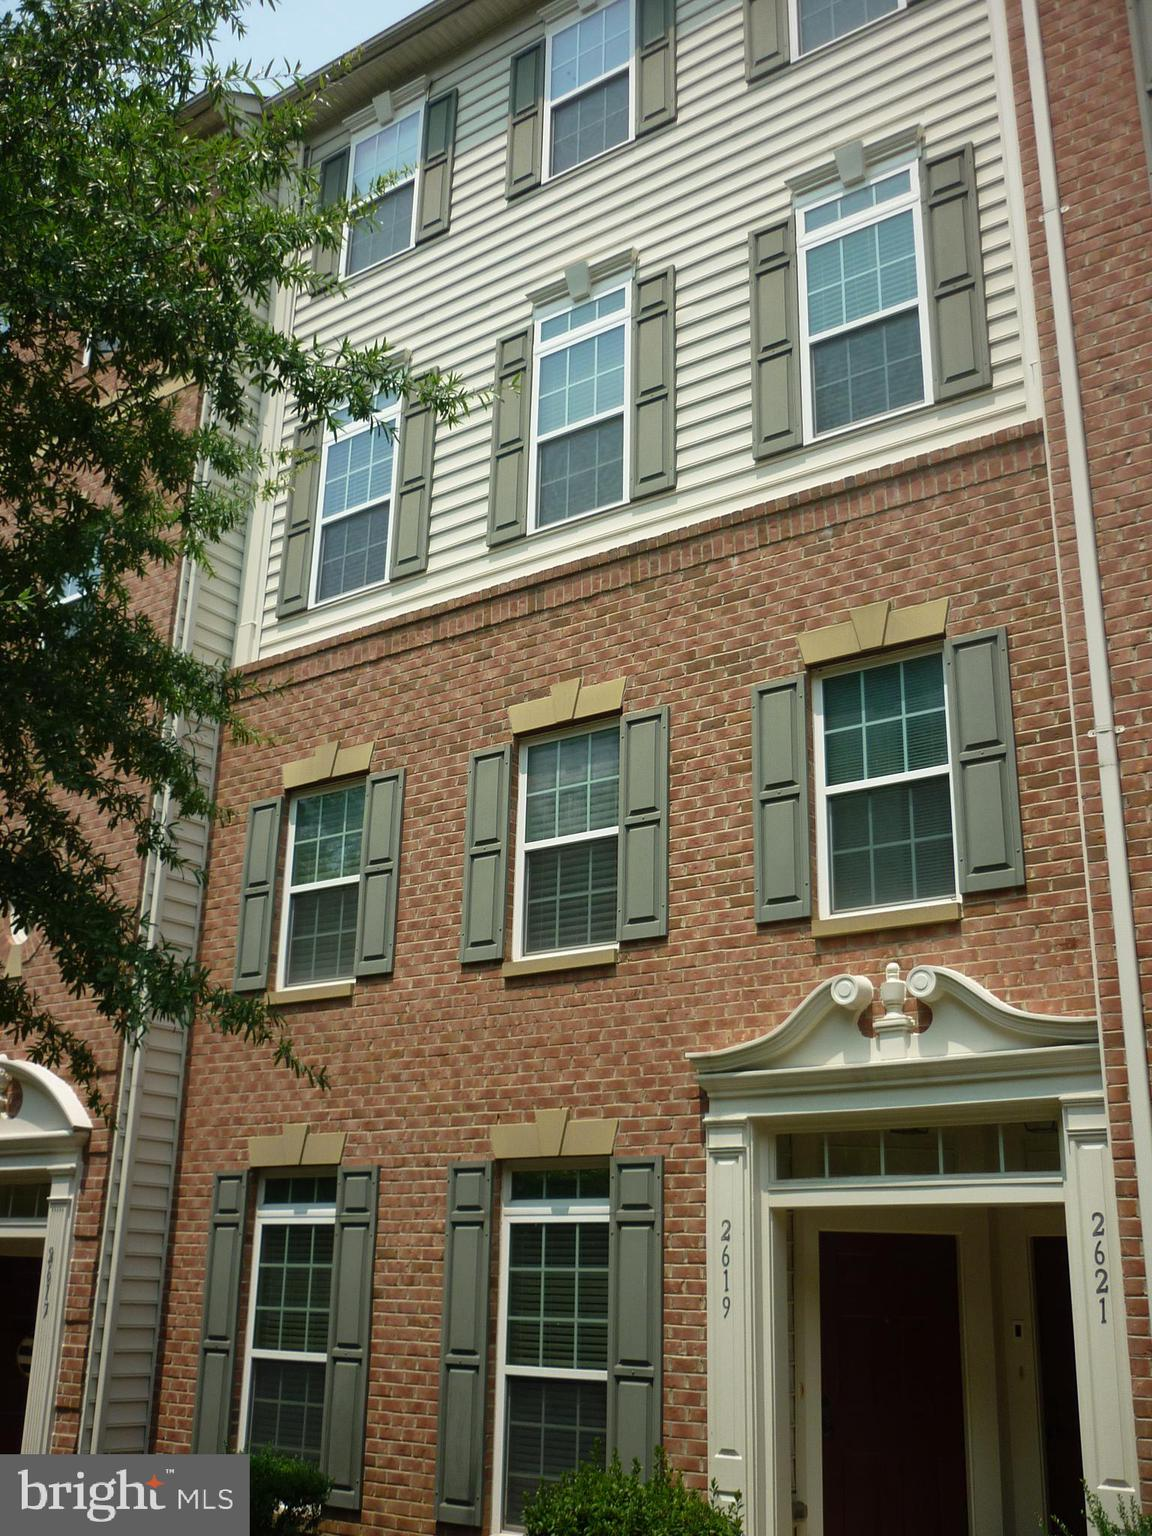 Welcome to the Potomac Club! Spacious two level townhouse style condo on lower floors. Enter on beautiful main level with no stairs to walk up! Gleaming hardwoods and a bright, open, floor plan. Gourmet kitchen has granite counters and stainless appliances.  Main level living with 3 bedrooms and a laundry room on upper level. Primary suite is large with  a walk-in closet and luxury master bath.  One car rear entry garage with additional parking in driveway. Potomac Club offers the ultimate in luxury and convenience!  Walk across the street to Stonebridge or Potomac Town Center to shop or dine. This amenity rich community offers a staffed fitness center with free classes, a rock climbing wall, business center, sauna, heated indoor and outdoor pools, tot lots, all purpose racket sport courts. Condo/HOA fees include water, sewer, trash, snow removal, exterior building and grounds maintenance and all amenities. Great commuting location close to Quantico, Ft. Belvoir, DC, or Pentagon. Easy access to I-95, Rt. 1 & VRE. This is a bankruptcy. All terms of listing and sale are subject to court approval. House will be sold completely  as-is.